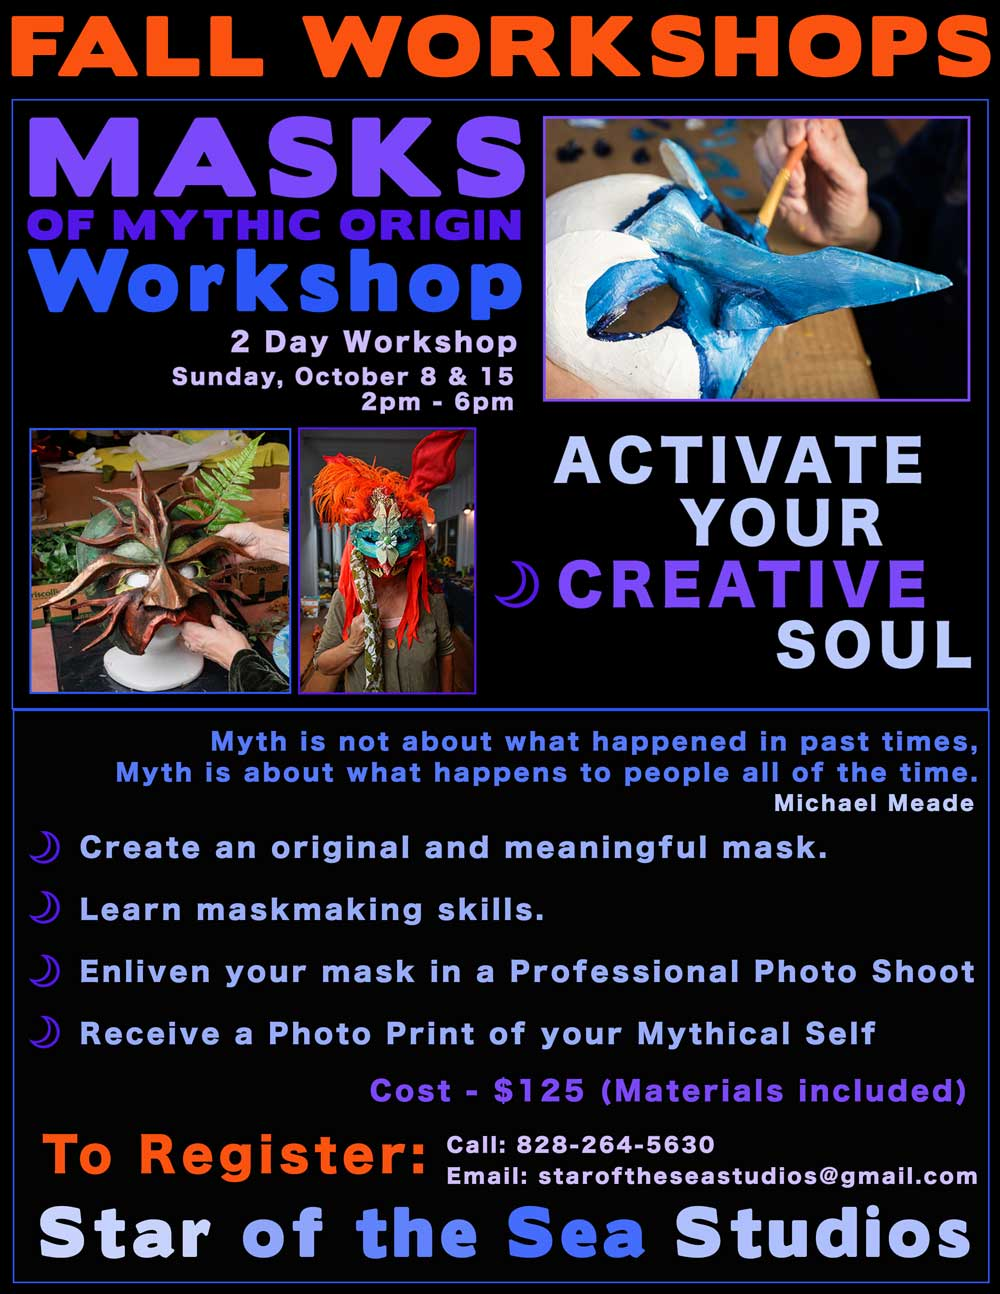 MaskMythicOrigin_Workshops_Poster_2017.jpg